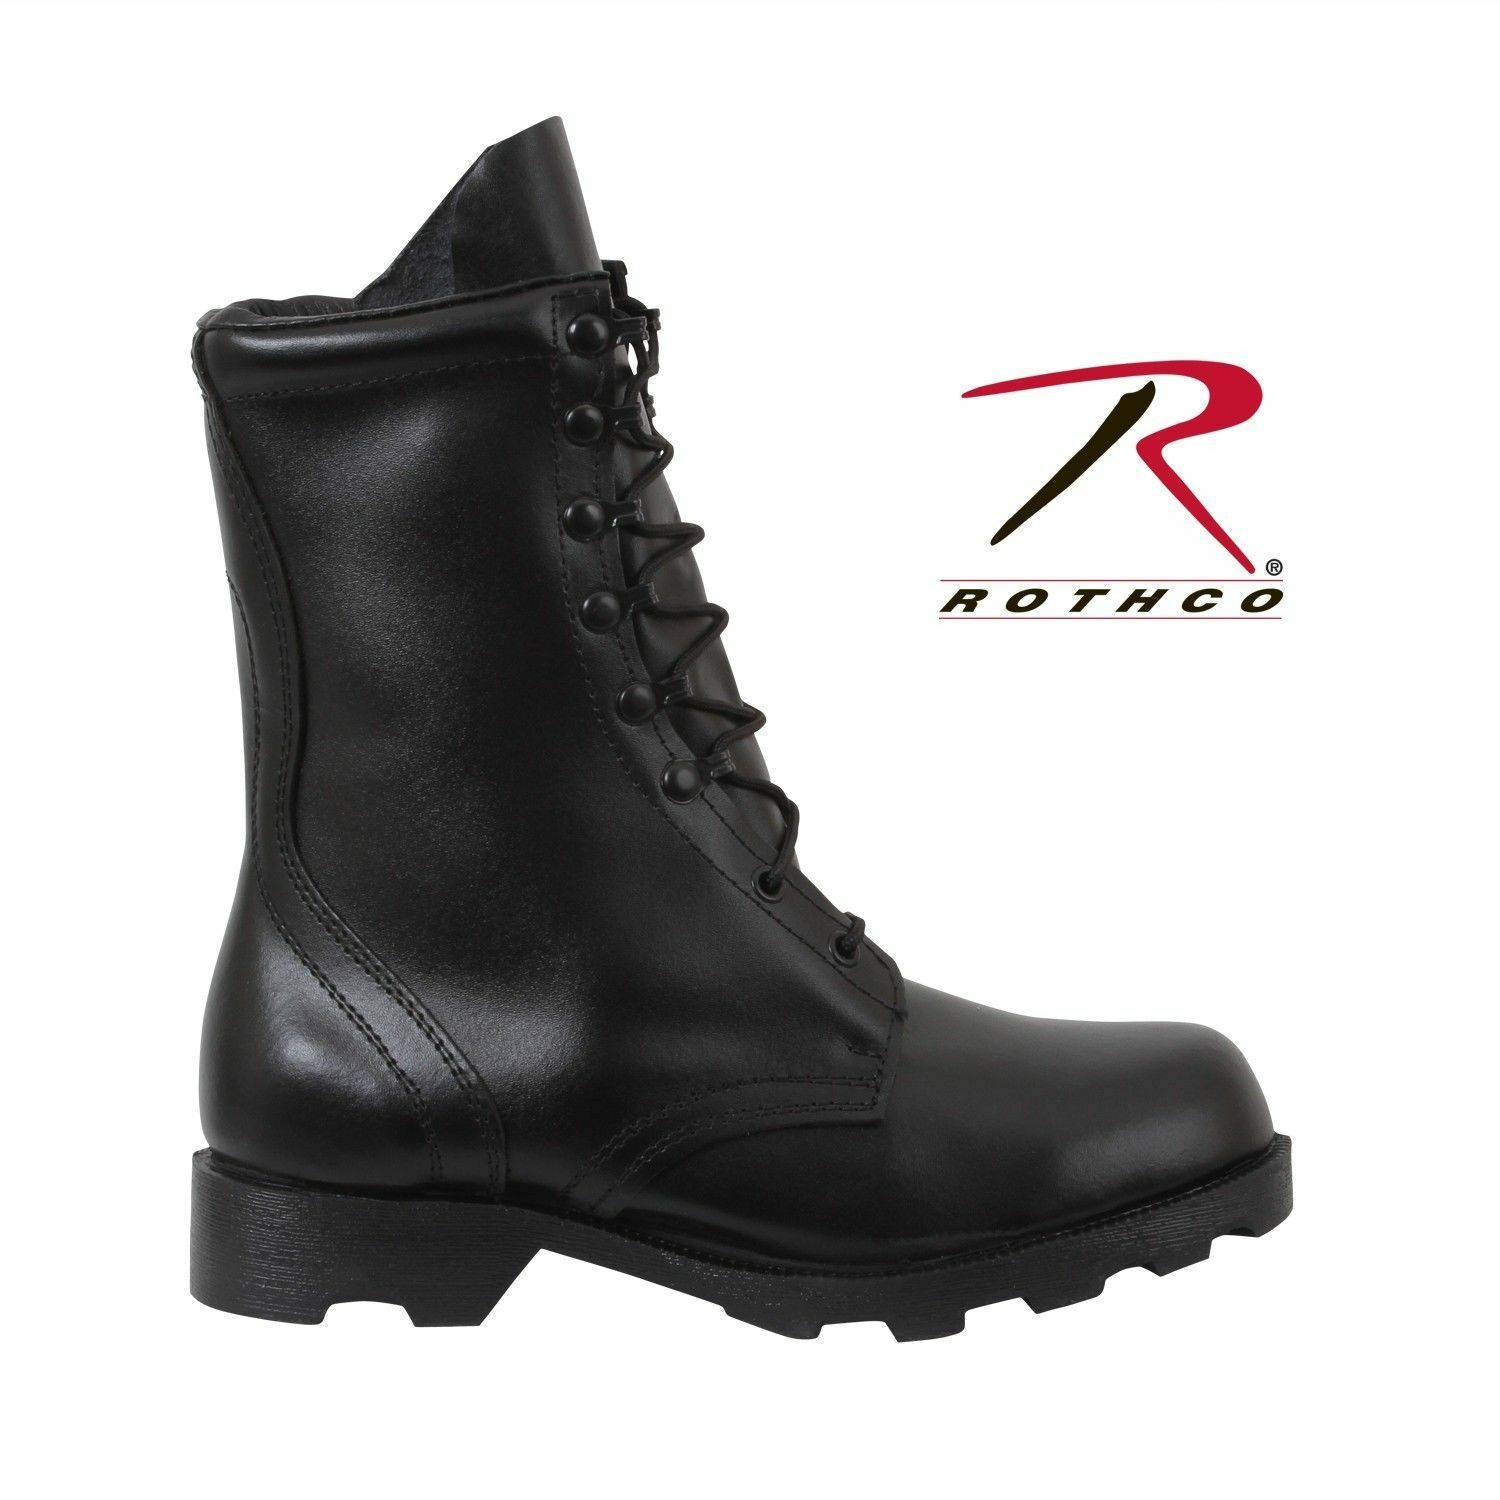 BOOTS Speedlace Black Leather Army Military COMBAT10  redhco 5094 Various Sizes